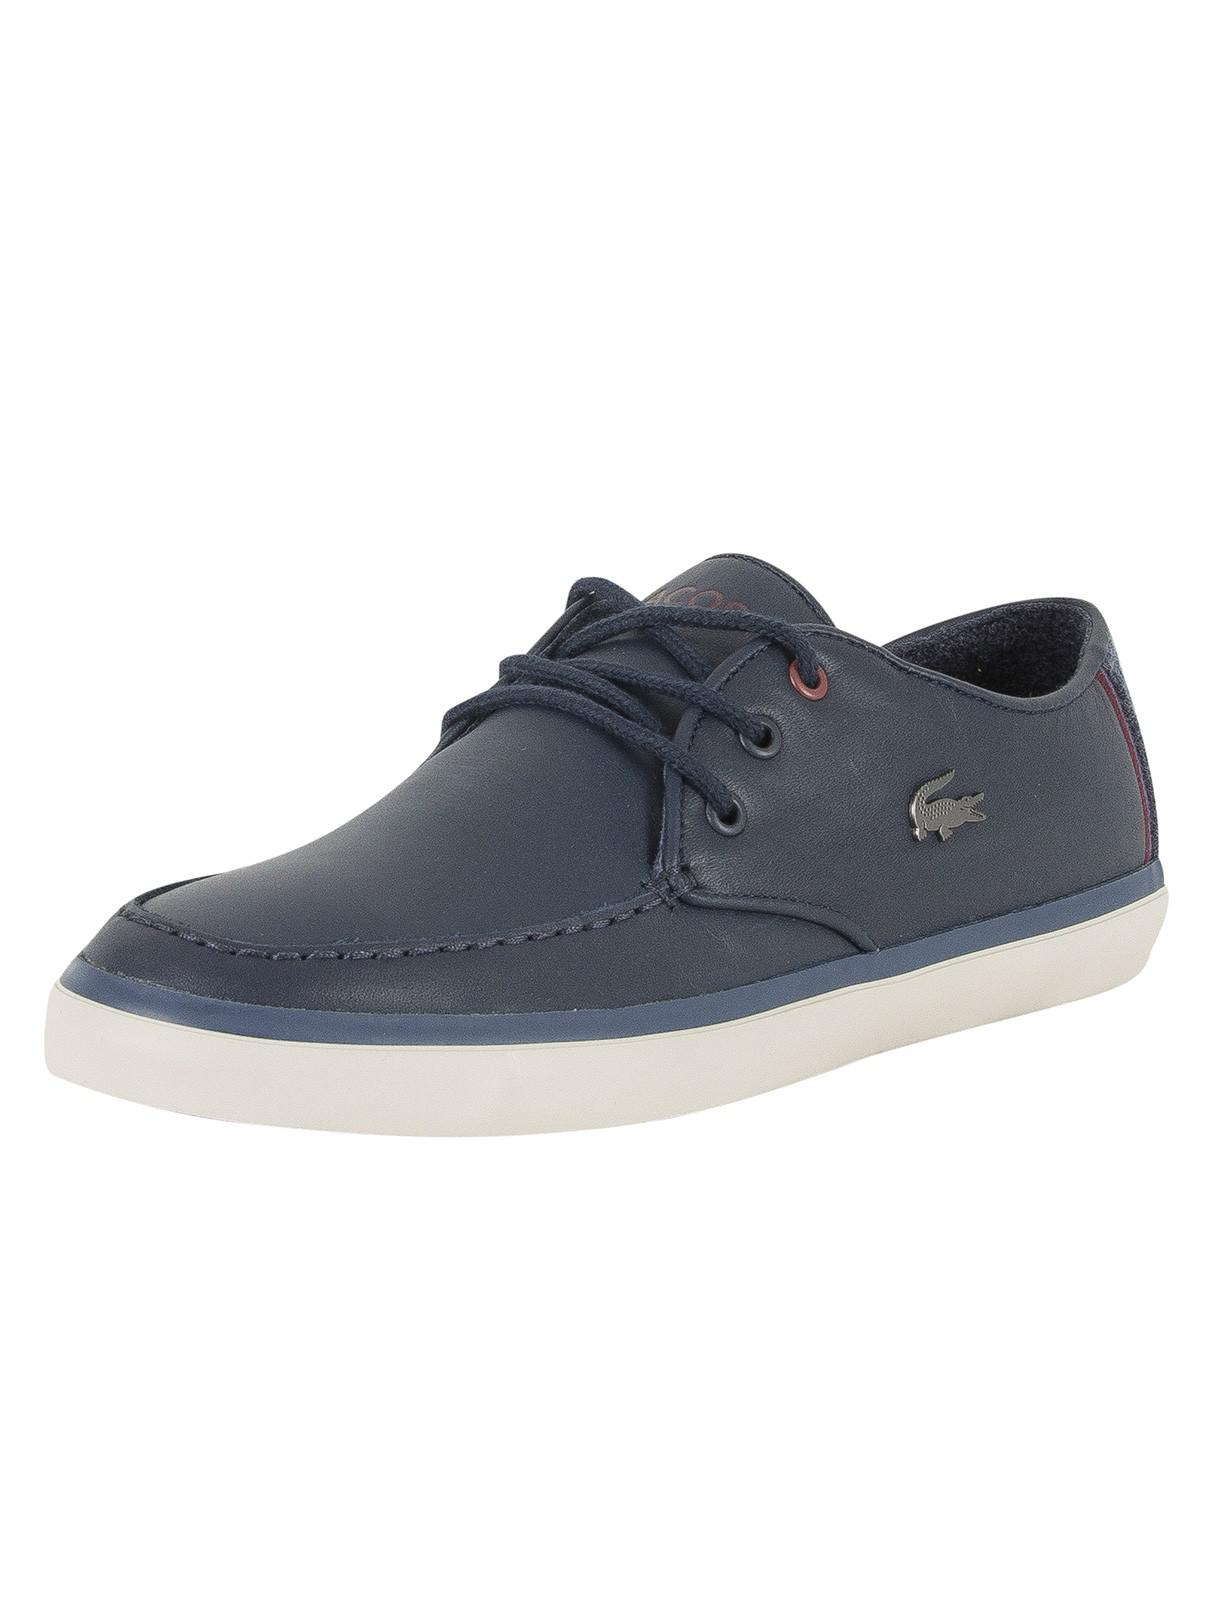 Mens Sevrin 417 1 Cam Low-Top Sneakers Lacoste xSm0F8GI1